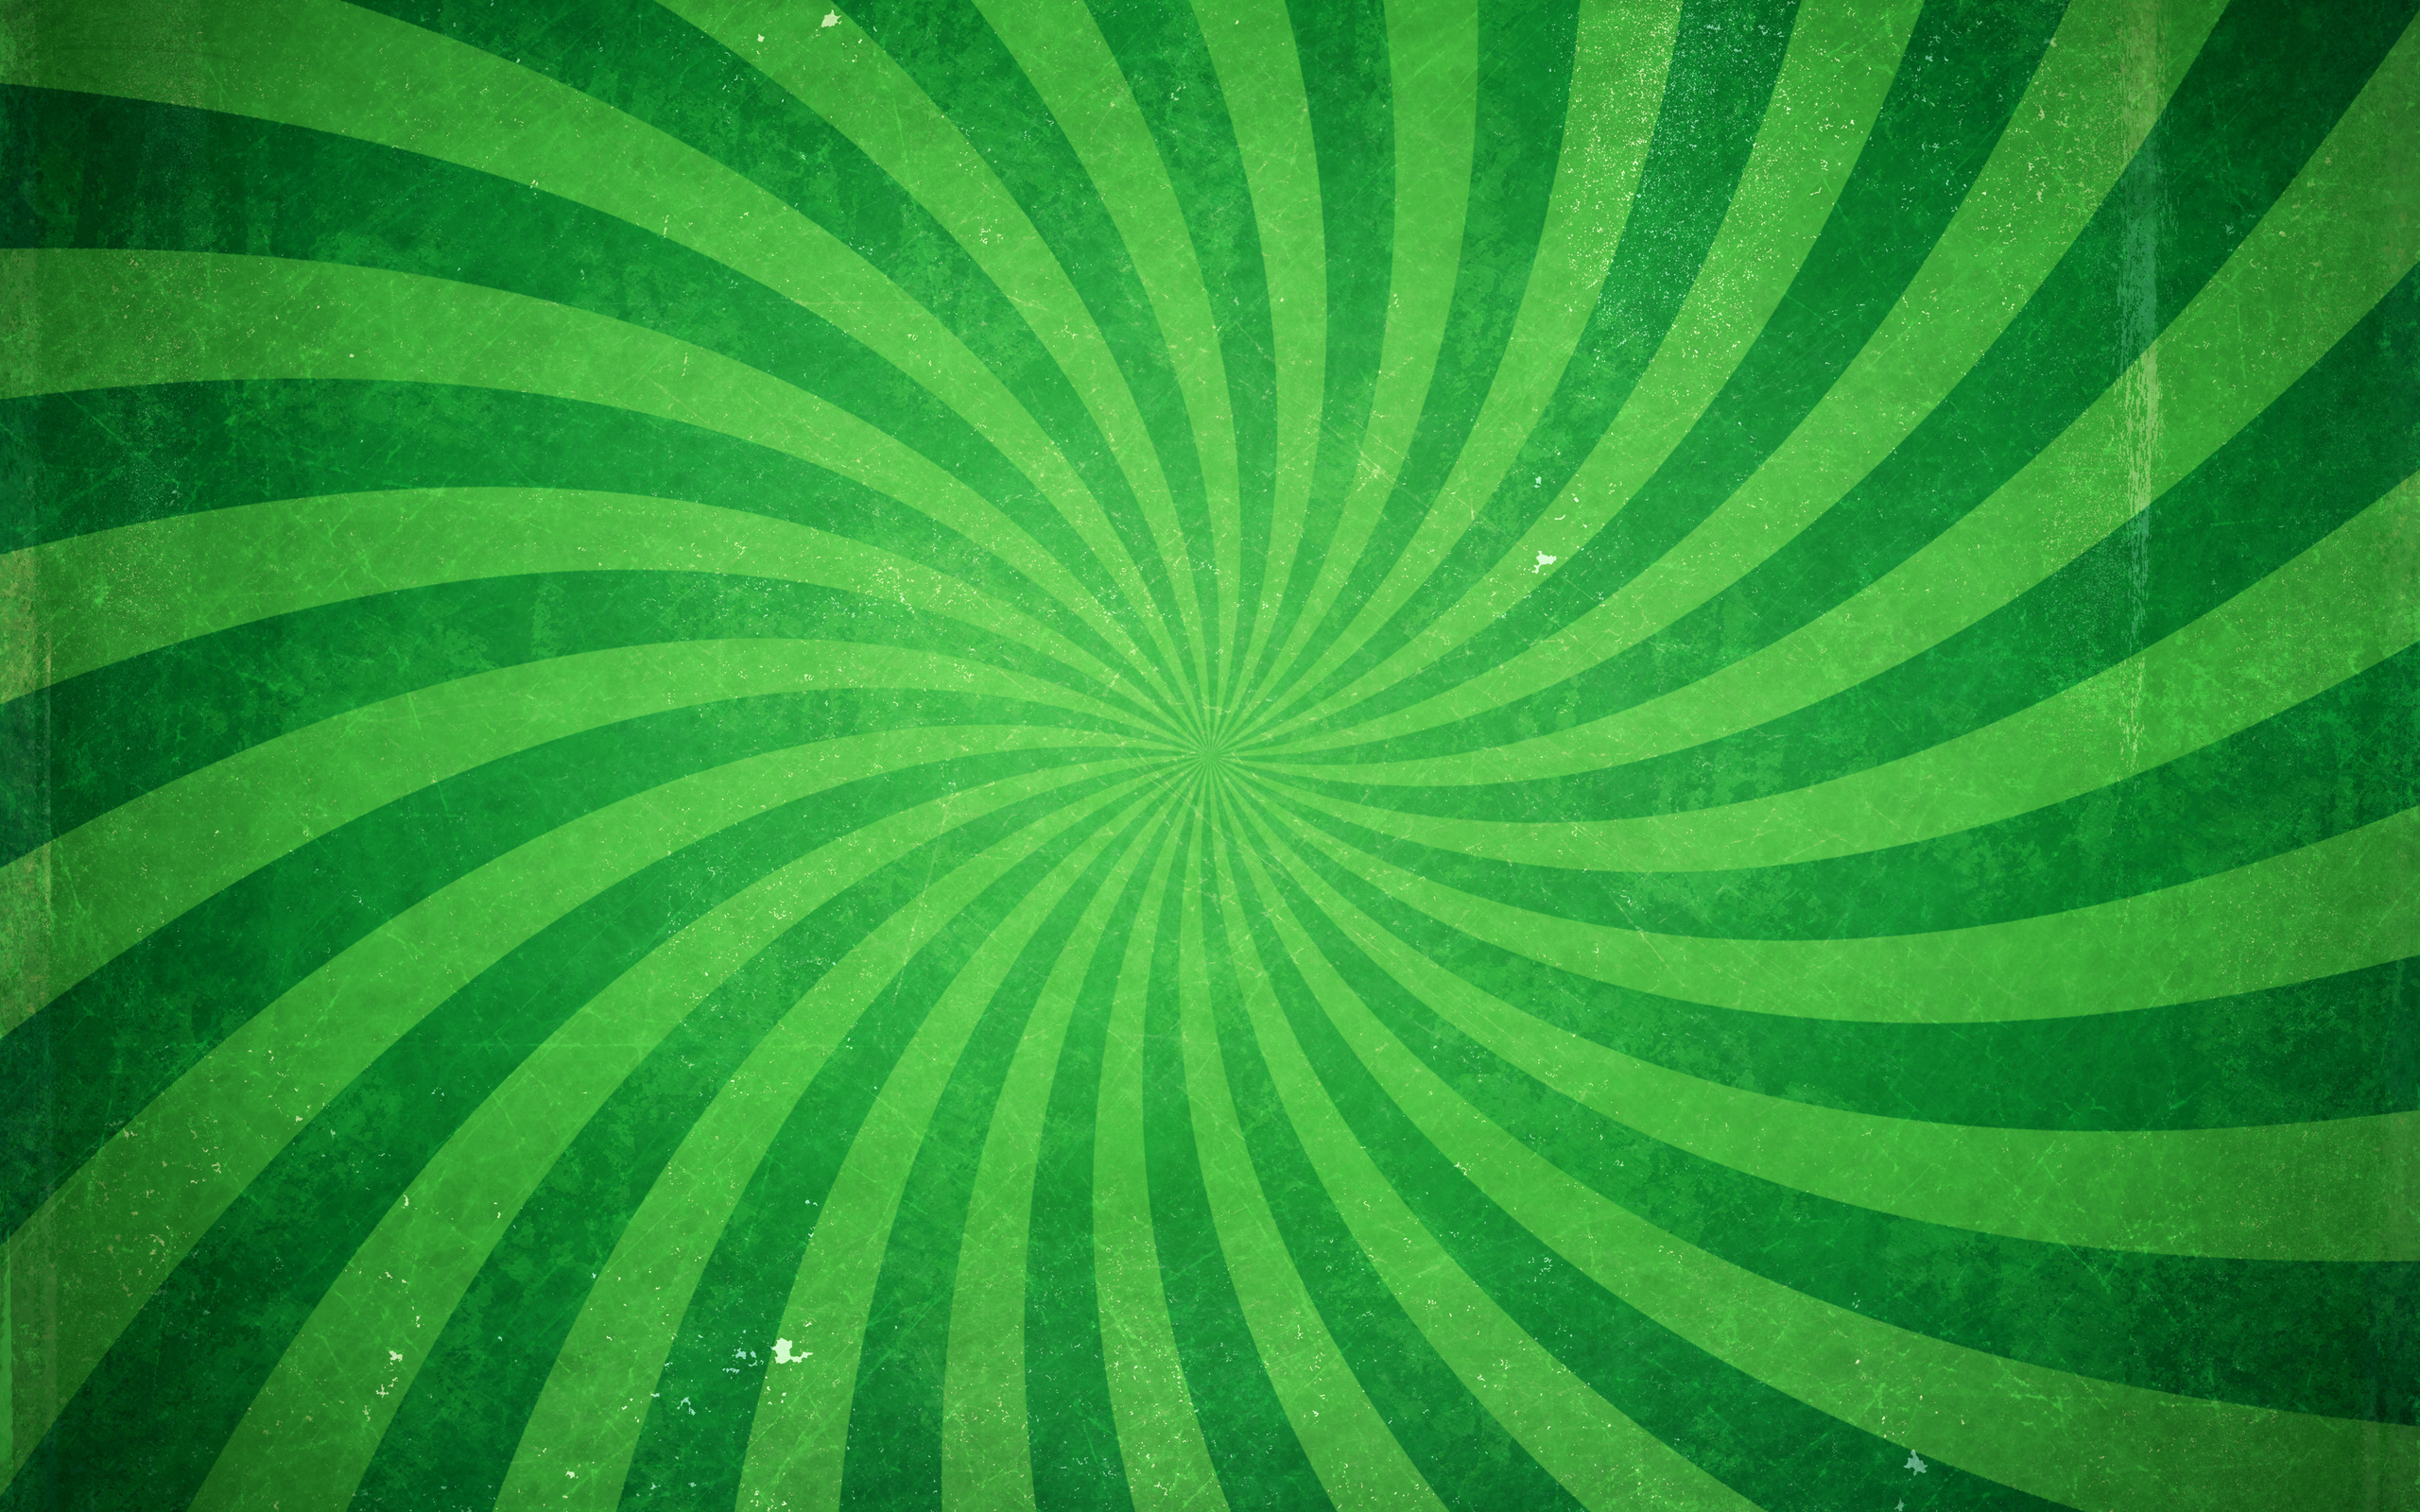 green-wallpaper-widescreen-download | wallpaper.wiki